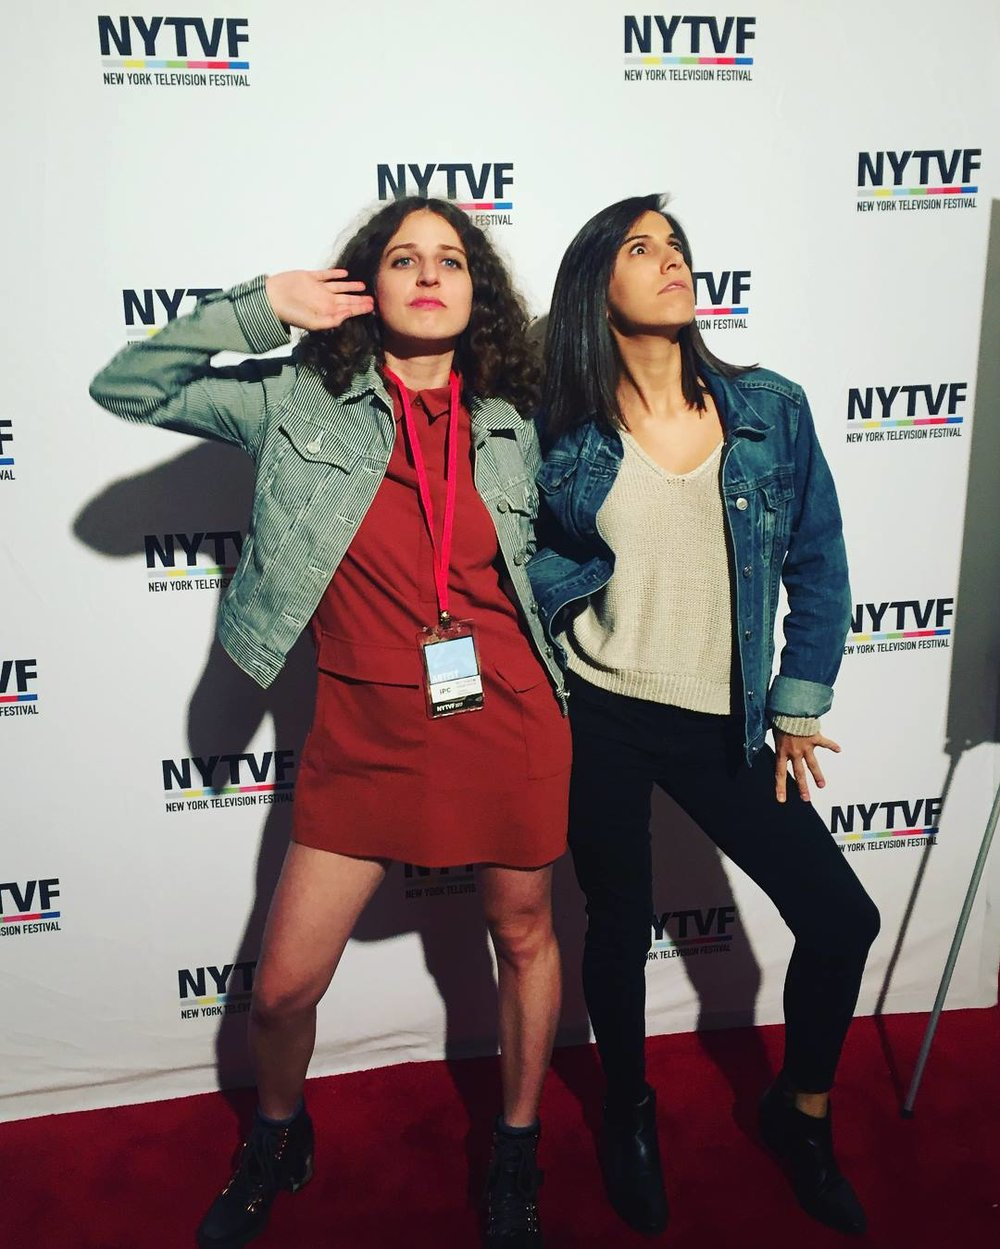 Repping Two Comedy Pilots at NYTVF 2017